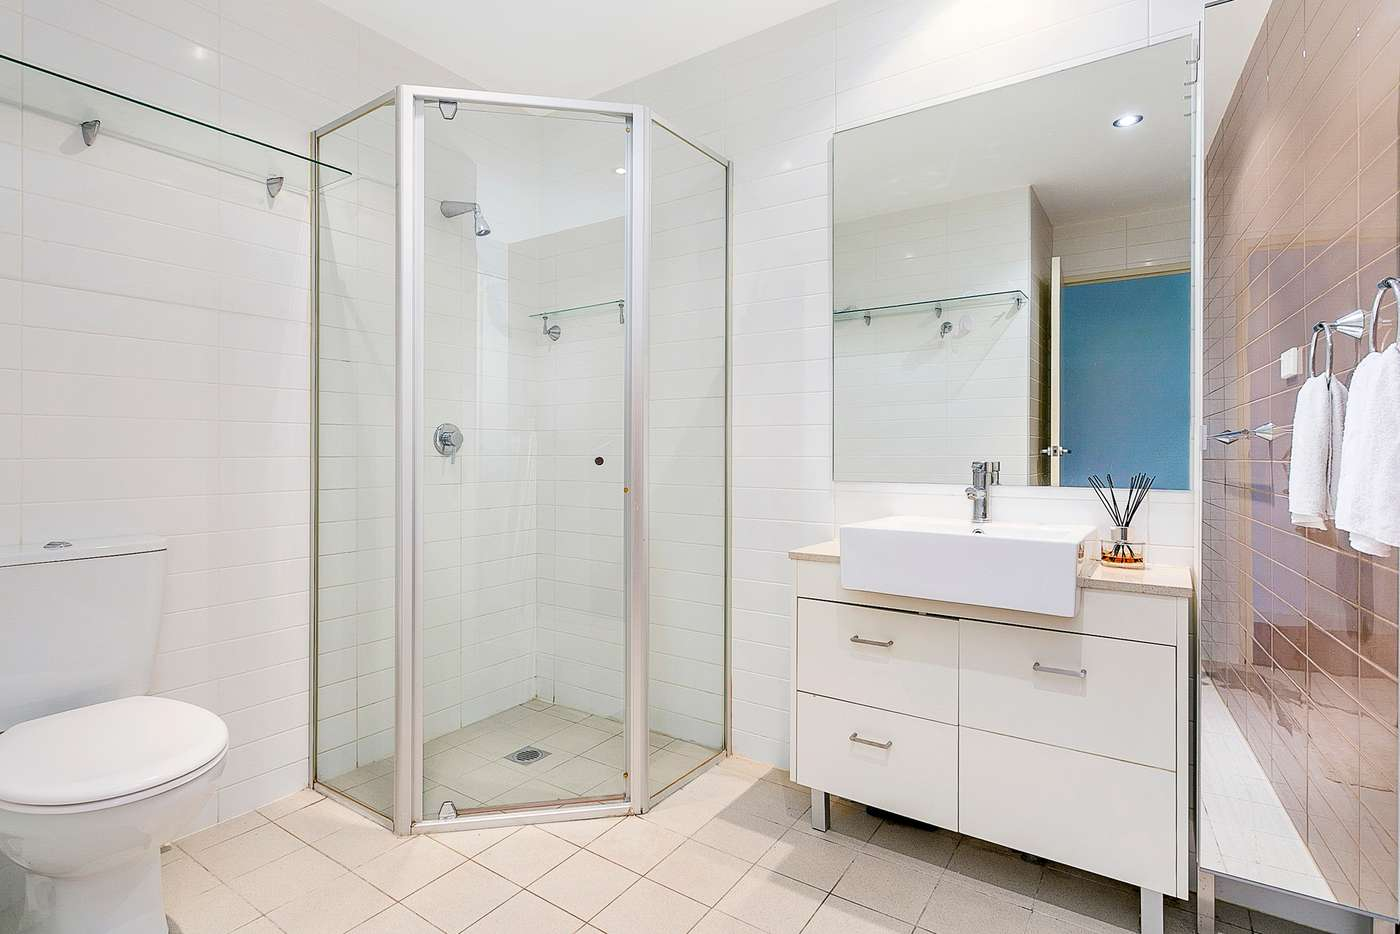 Fifth view of Homely apartment listing, 220/23 Hill Road, Wentworth Point NSW 2127